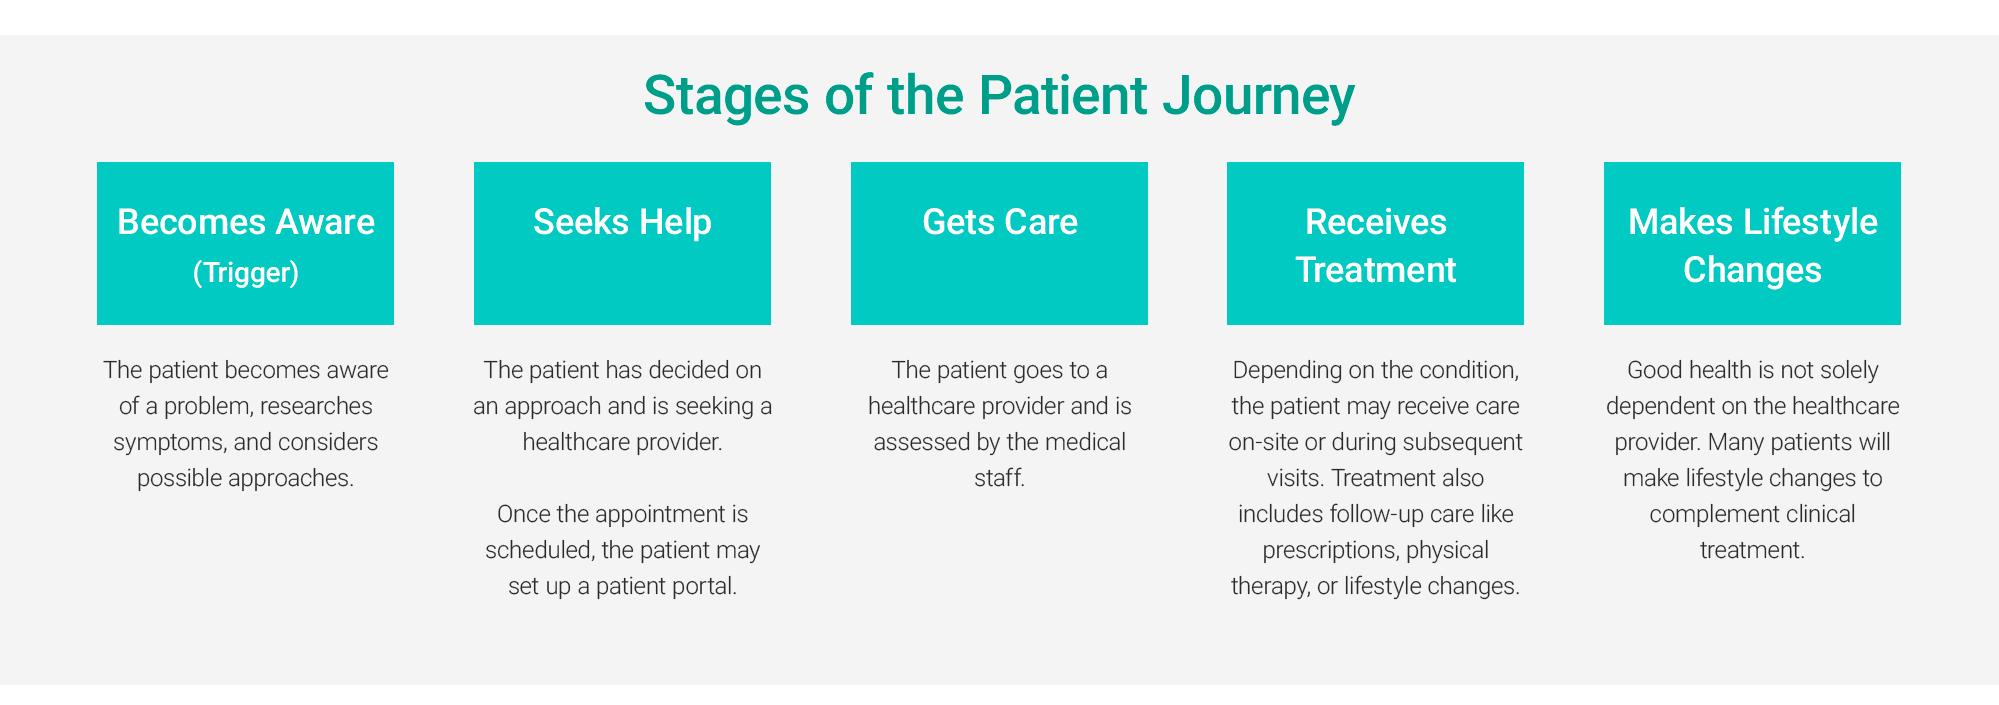 stages of the patient journey